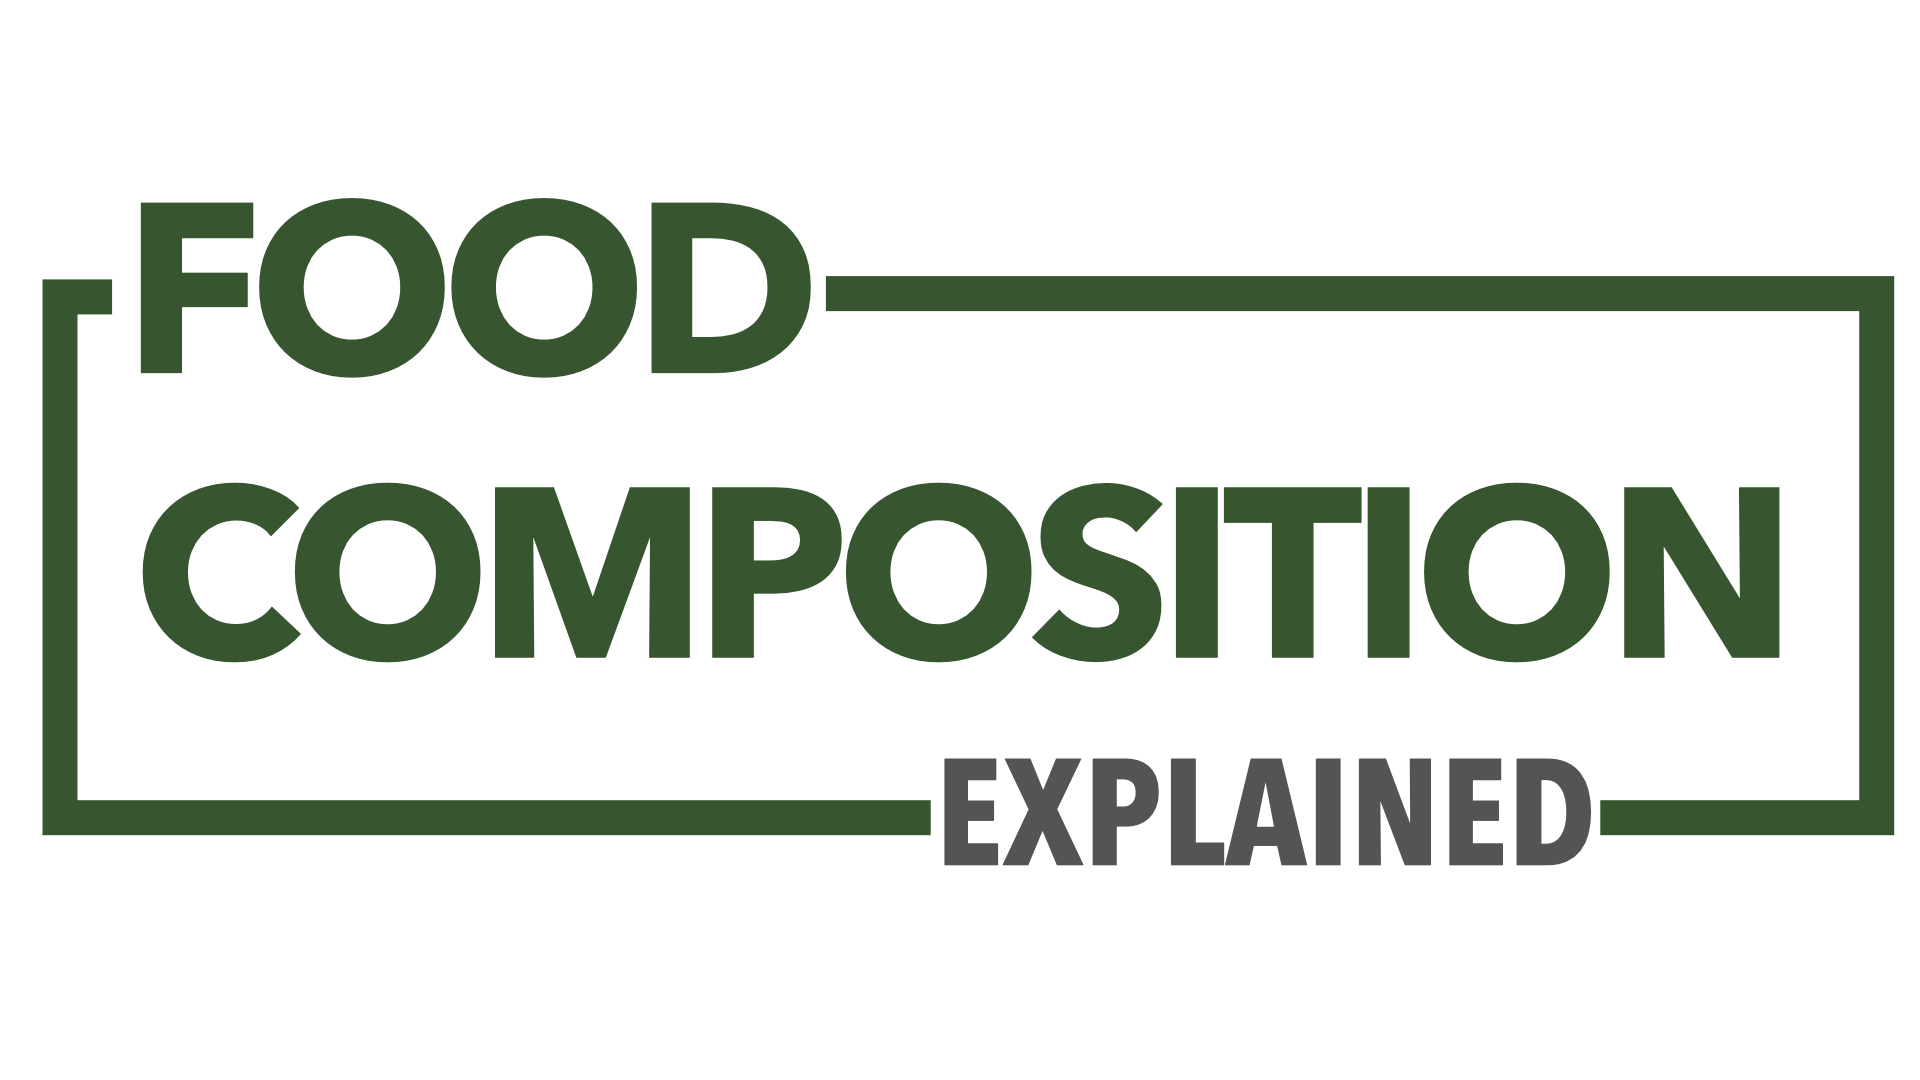 Food Composition Explained